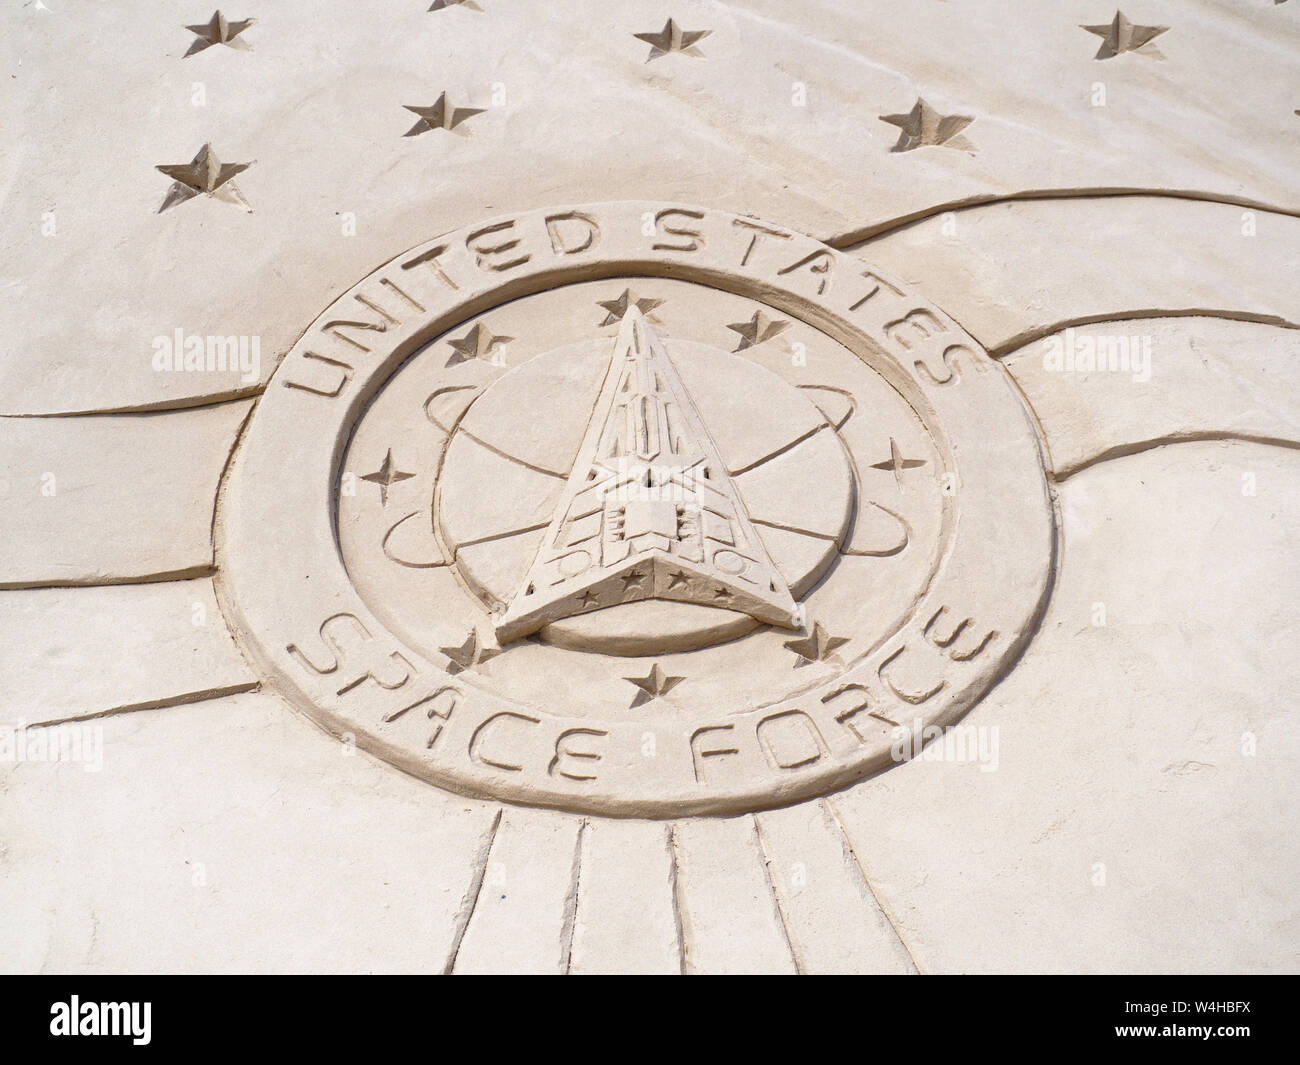 United States Space Force logo sculpted in sand at the 2019 Texas Sandfest in Port Aransas, Texas USA. Stock Photo